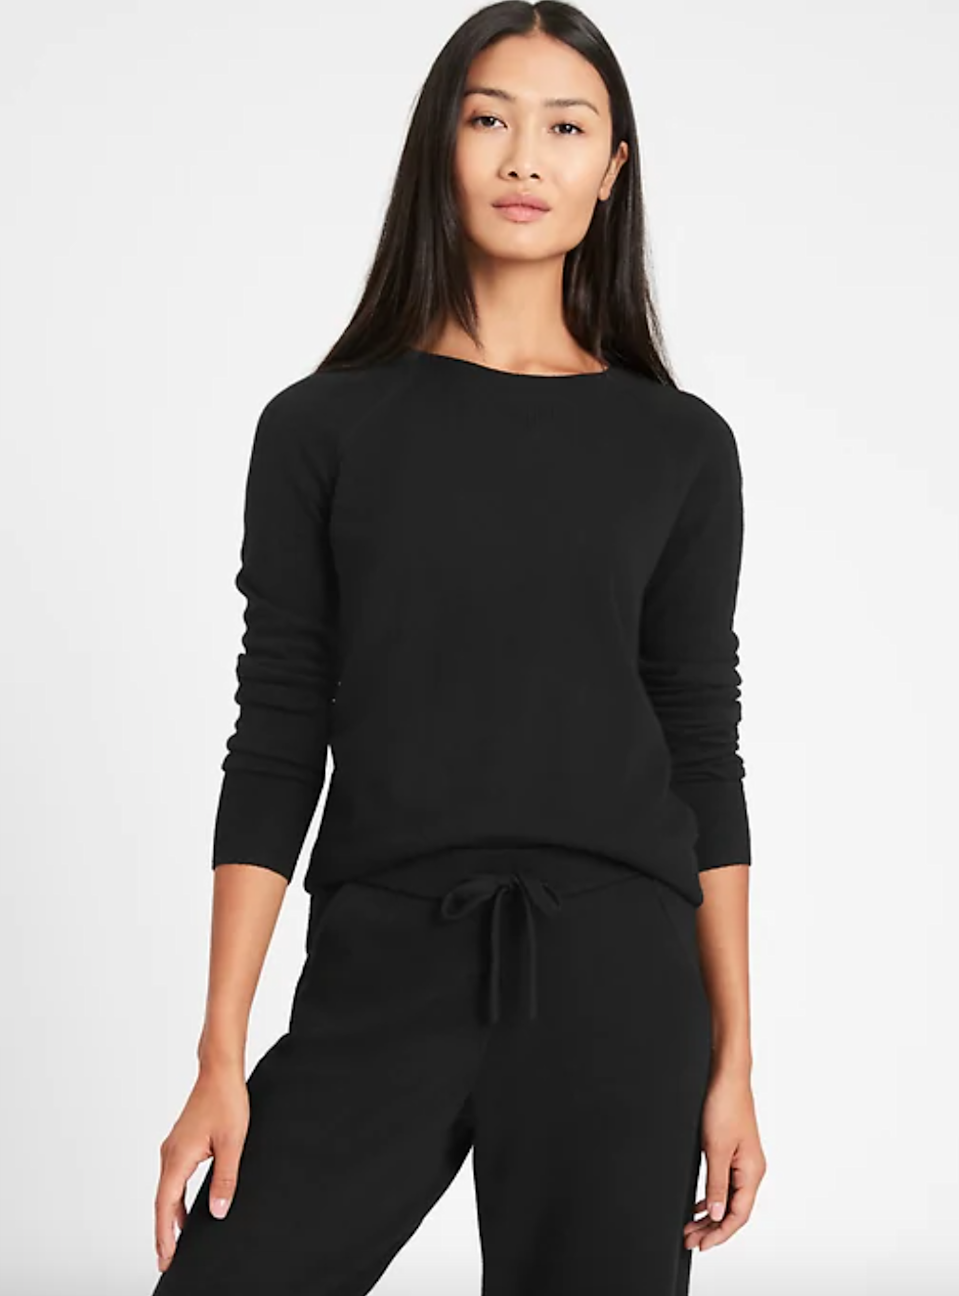 """<br><br><strong>Banana Republic</strong> Italian Wool-Cashmere Cropped Sweater, $, available at <a href=""""https://go.skimresources.com/?id=30283X879131&url=https%3A%2F%2Fbananarepublic.gap.com%2Fbrowse%2Fproduct.do%3Fpid%3D657989002"""" rel=""""nofollow noopener"""" target=""""_blank"""" data-ylk=""""slk:Banana Republic"""" class=""""link rapid-noclick-resp"""">Banana Republic</a>"""